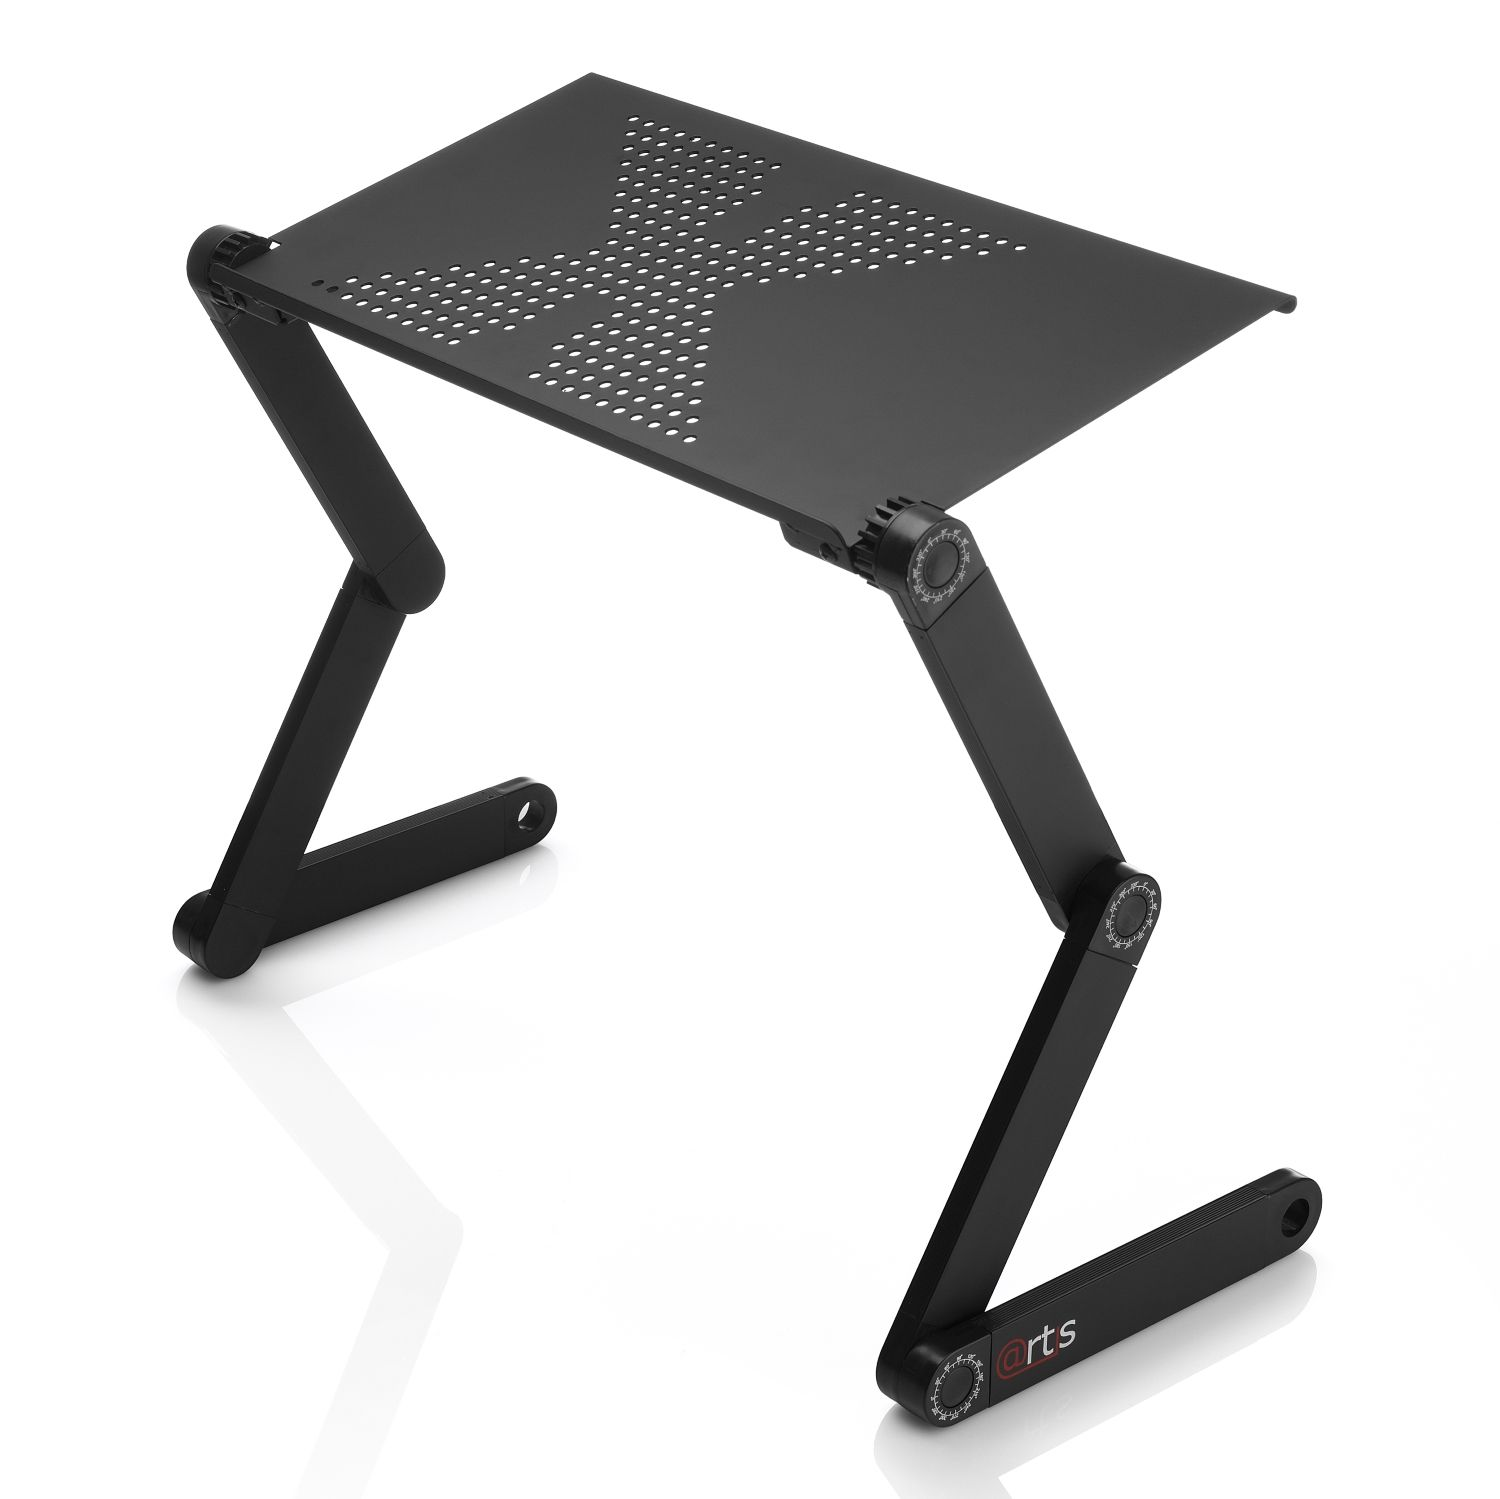 Ergonomic Lapdesk Folding Laptop Table Pc Desk Stand Bed Sofa Tray | Ergonomicu2026  sc 1 st  Pinterest & Ergonomic Lapdesk Folding Laptop Table Pc Desk Stand Bed Sofa Tray ... islam-shia.org